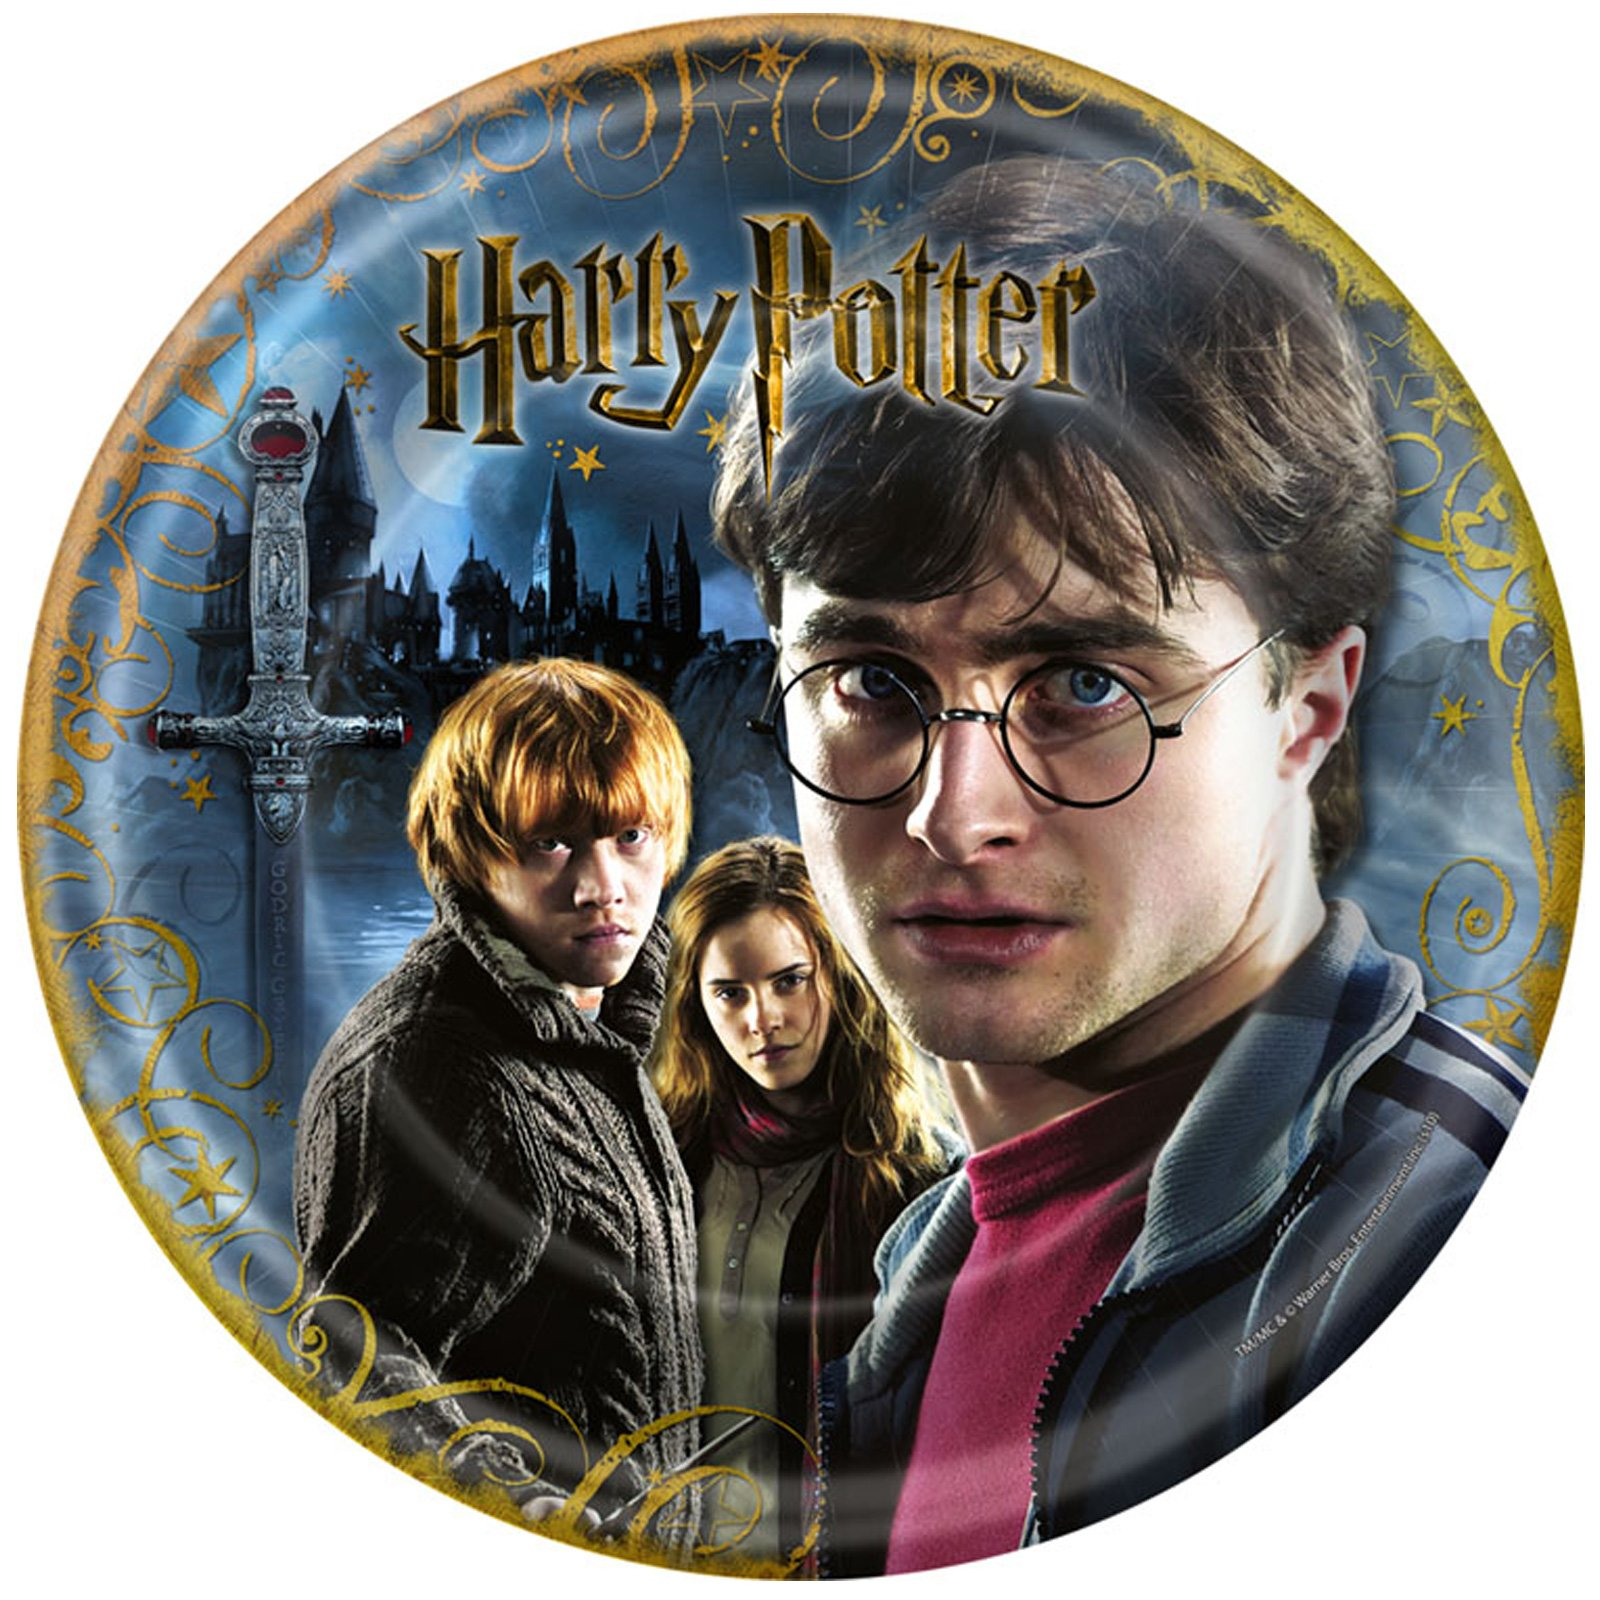 Harry Potter Deathly Hallows Dinner Plates (8 count)